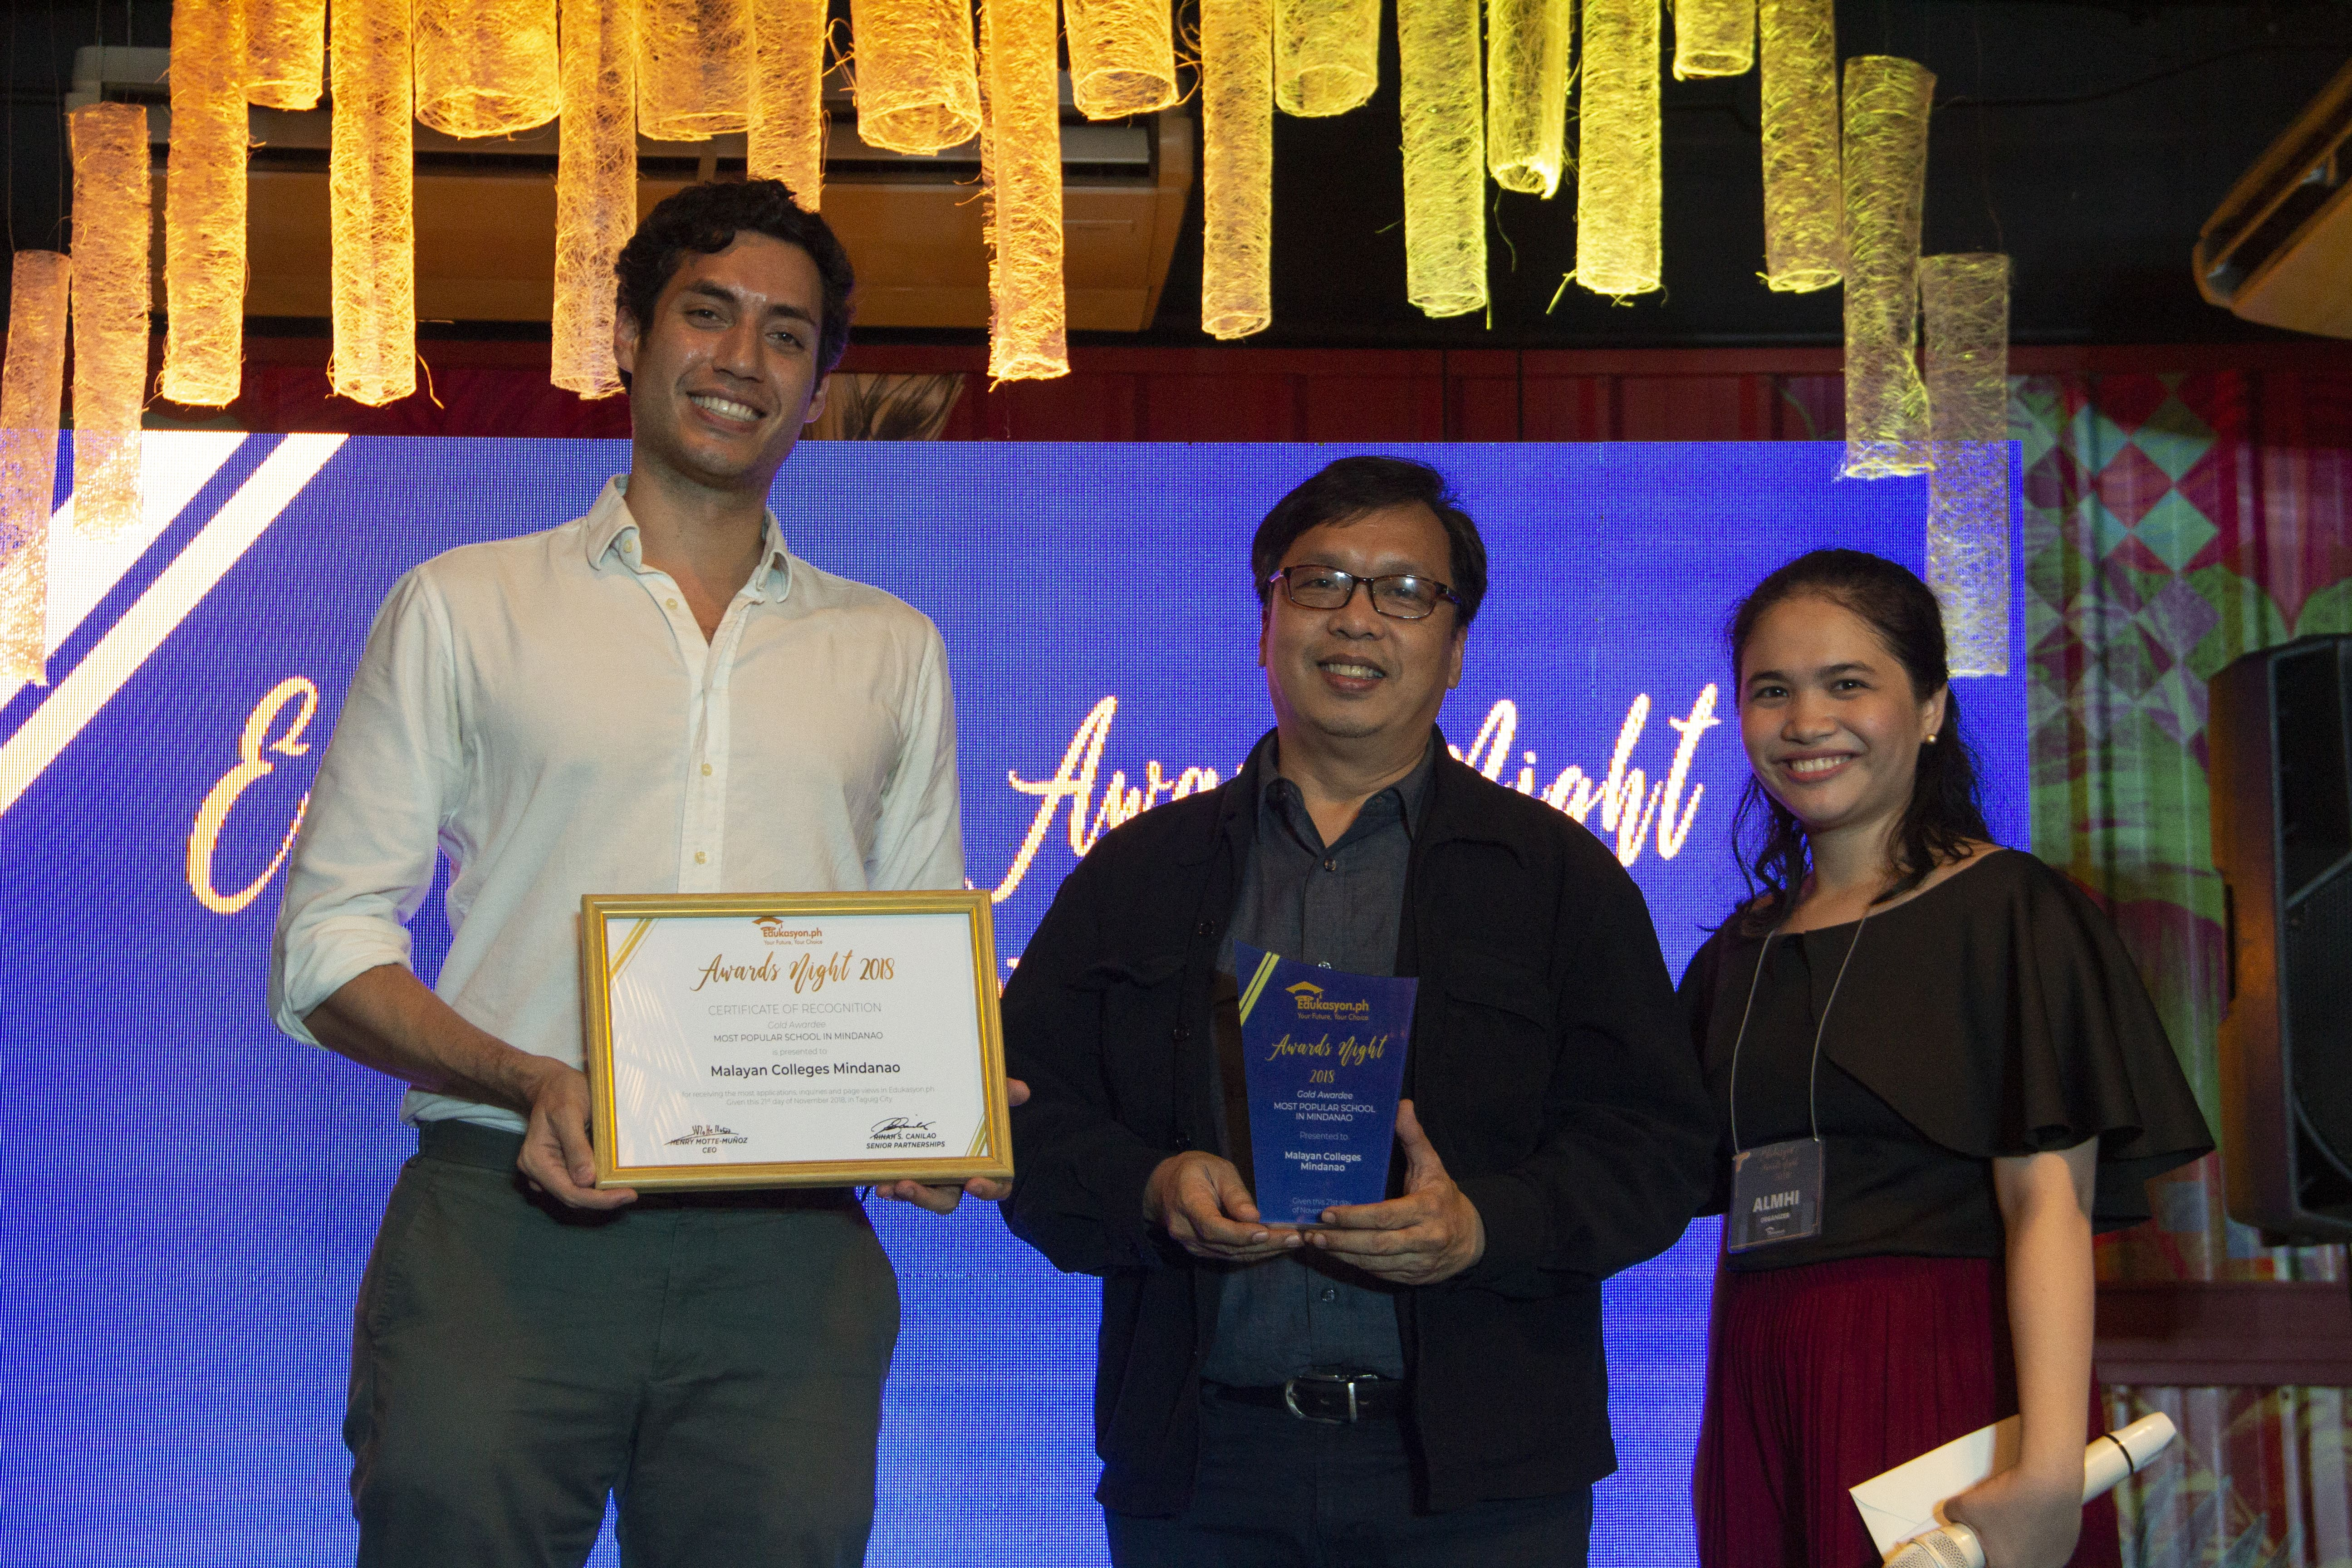 edukasyon.ph awards night